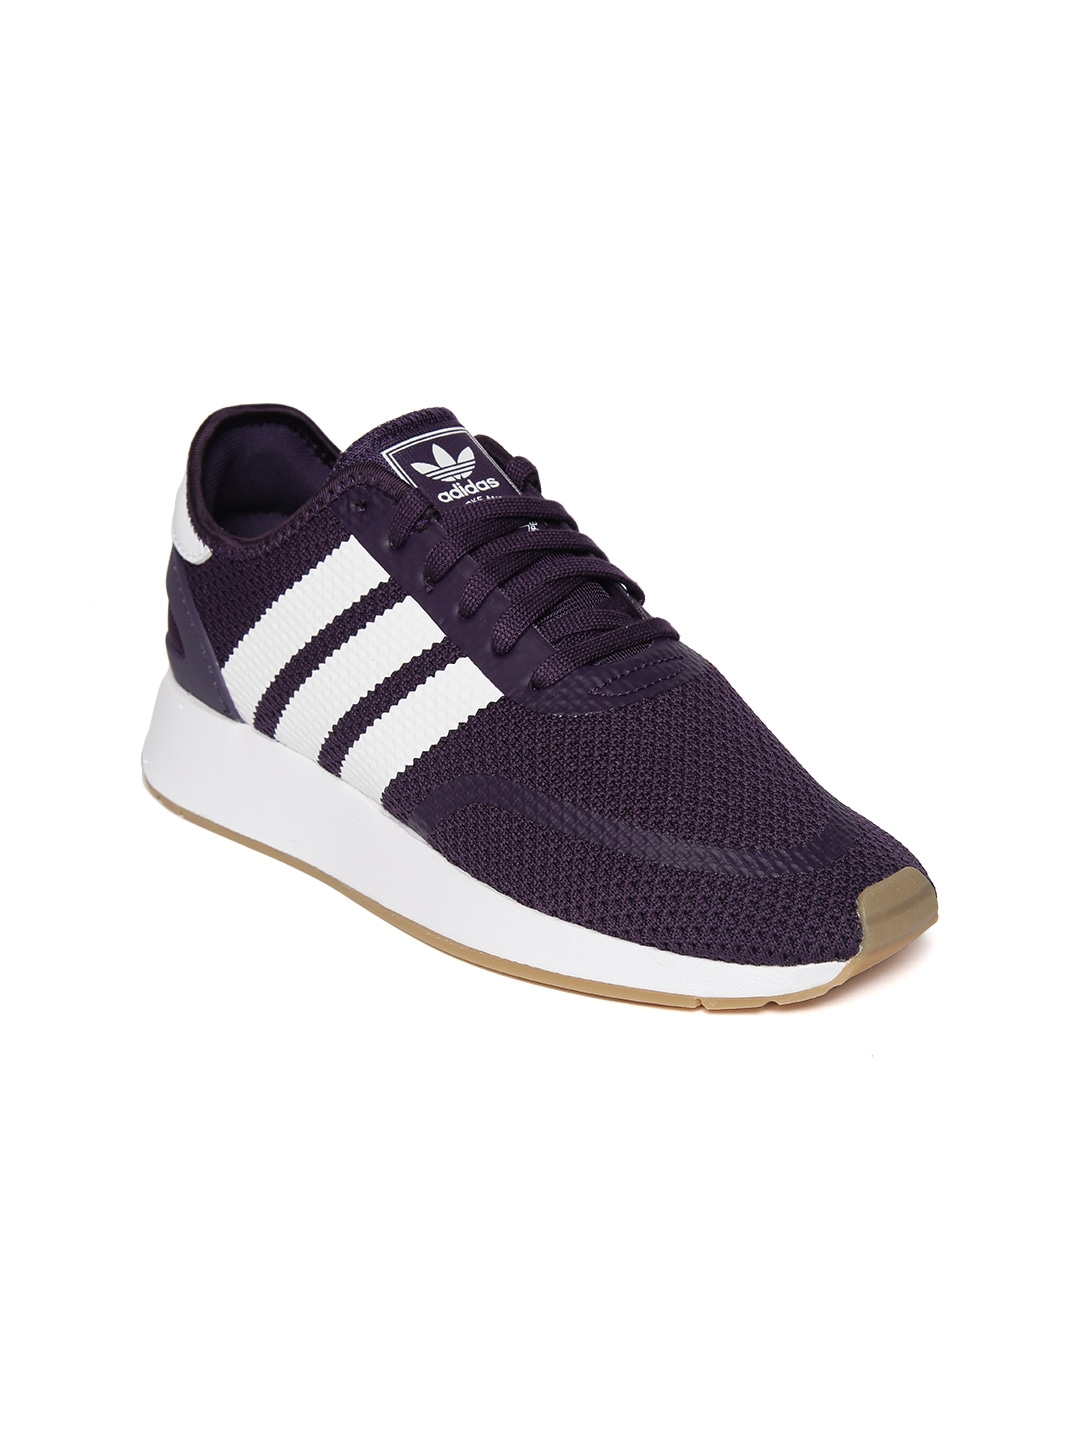 2cb1df71434 Adidas Originals - Buy Adidas Originals Products Online